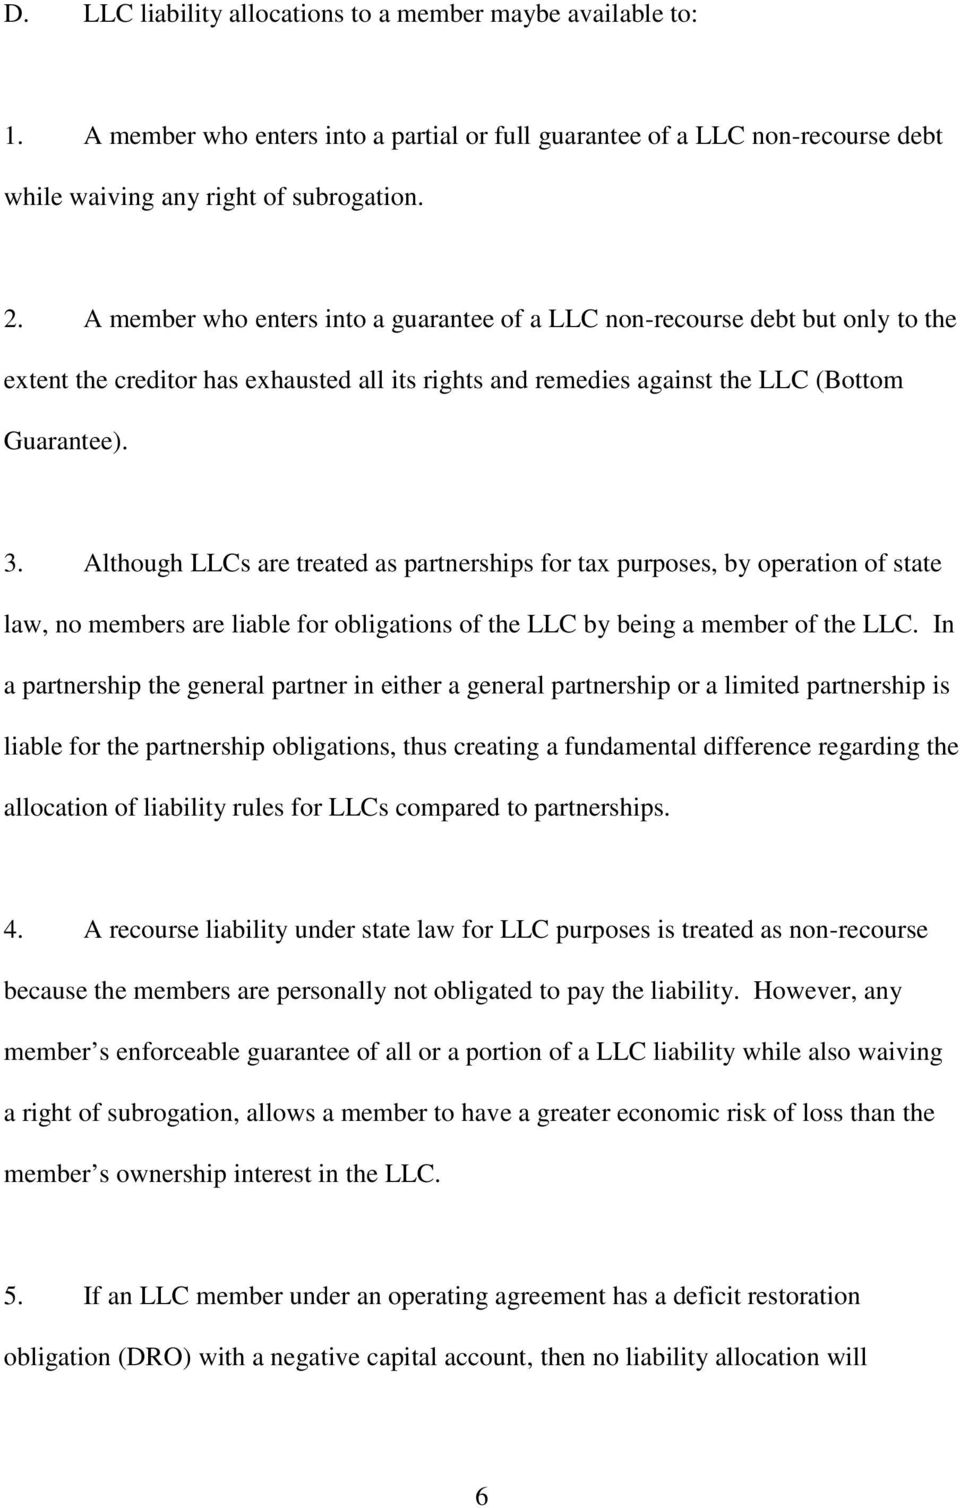 Although LLCs are treated as partnerships for tax purposes, by operation of state law, no members are liable for obligations of the LLC by being a member of the LLC.